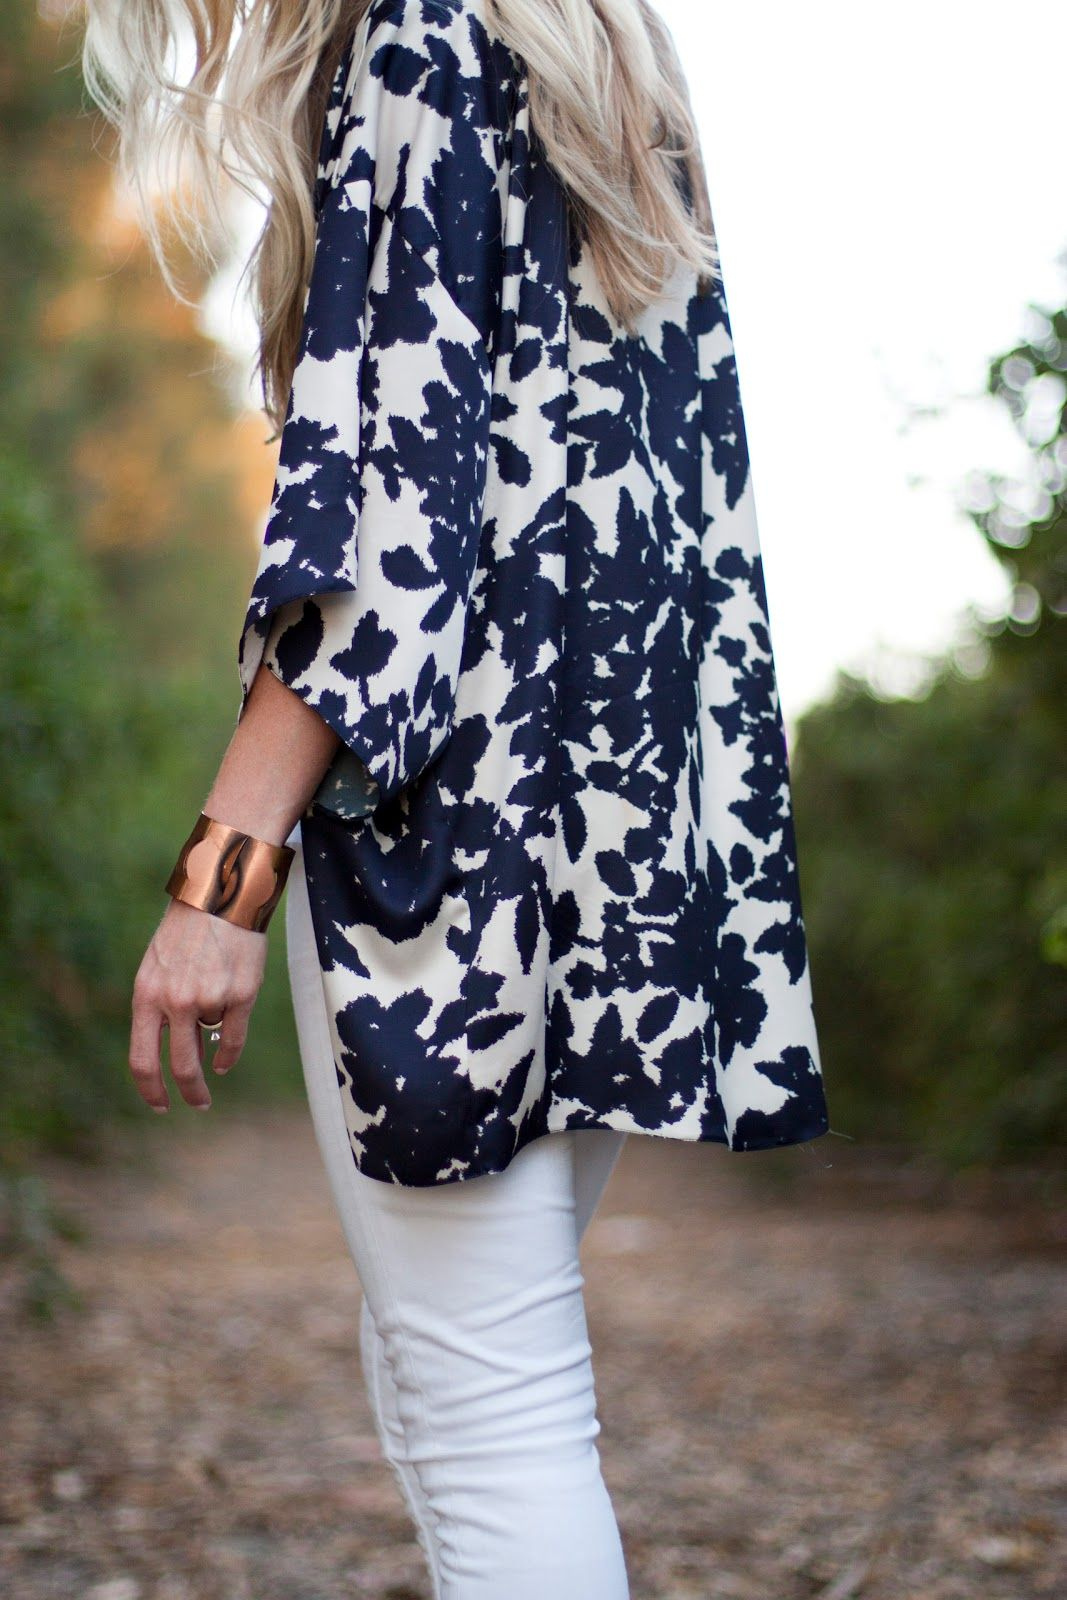 KIMONO COOL {TUTORIAL} | sewing clothes | Pinterest | DIY tutorial ...